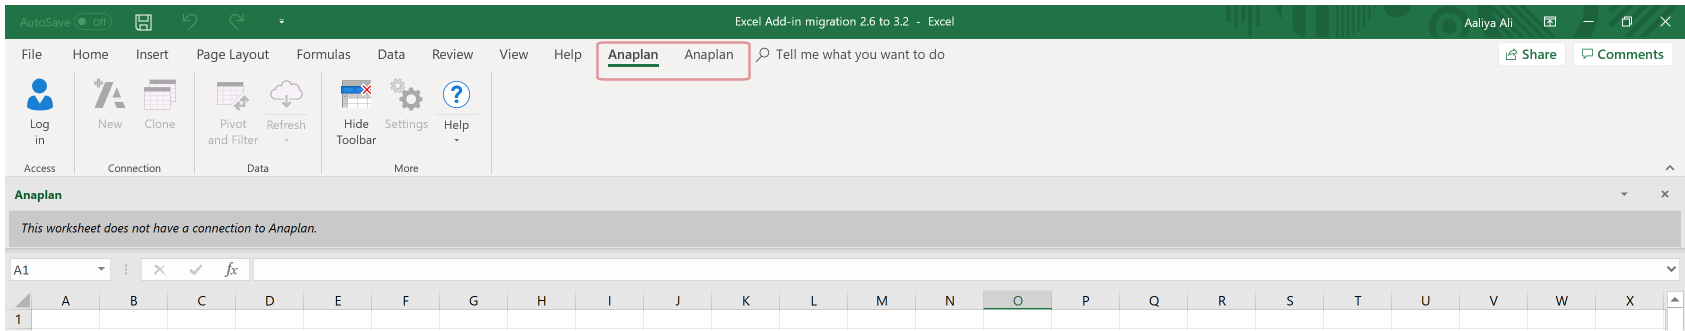 The selected Anaplan tab in this image is for Excel Add-in version 3.2 and displays version 3.2's ribbon. The unselected Anaplan tab is for Excel Add-in version 2.6.